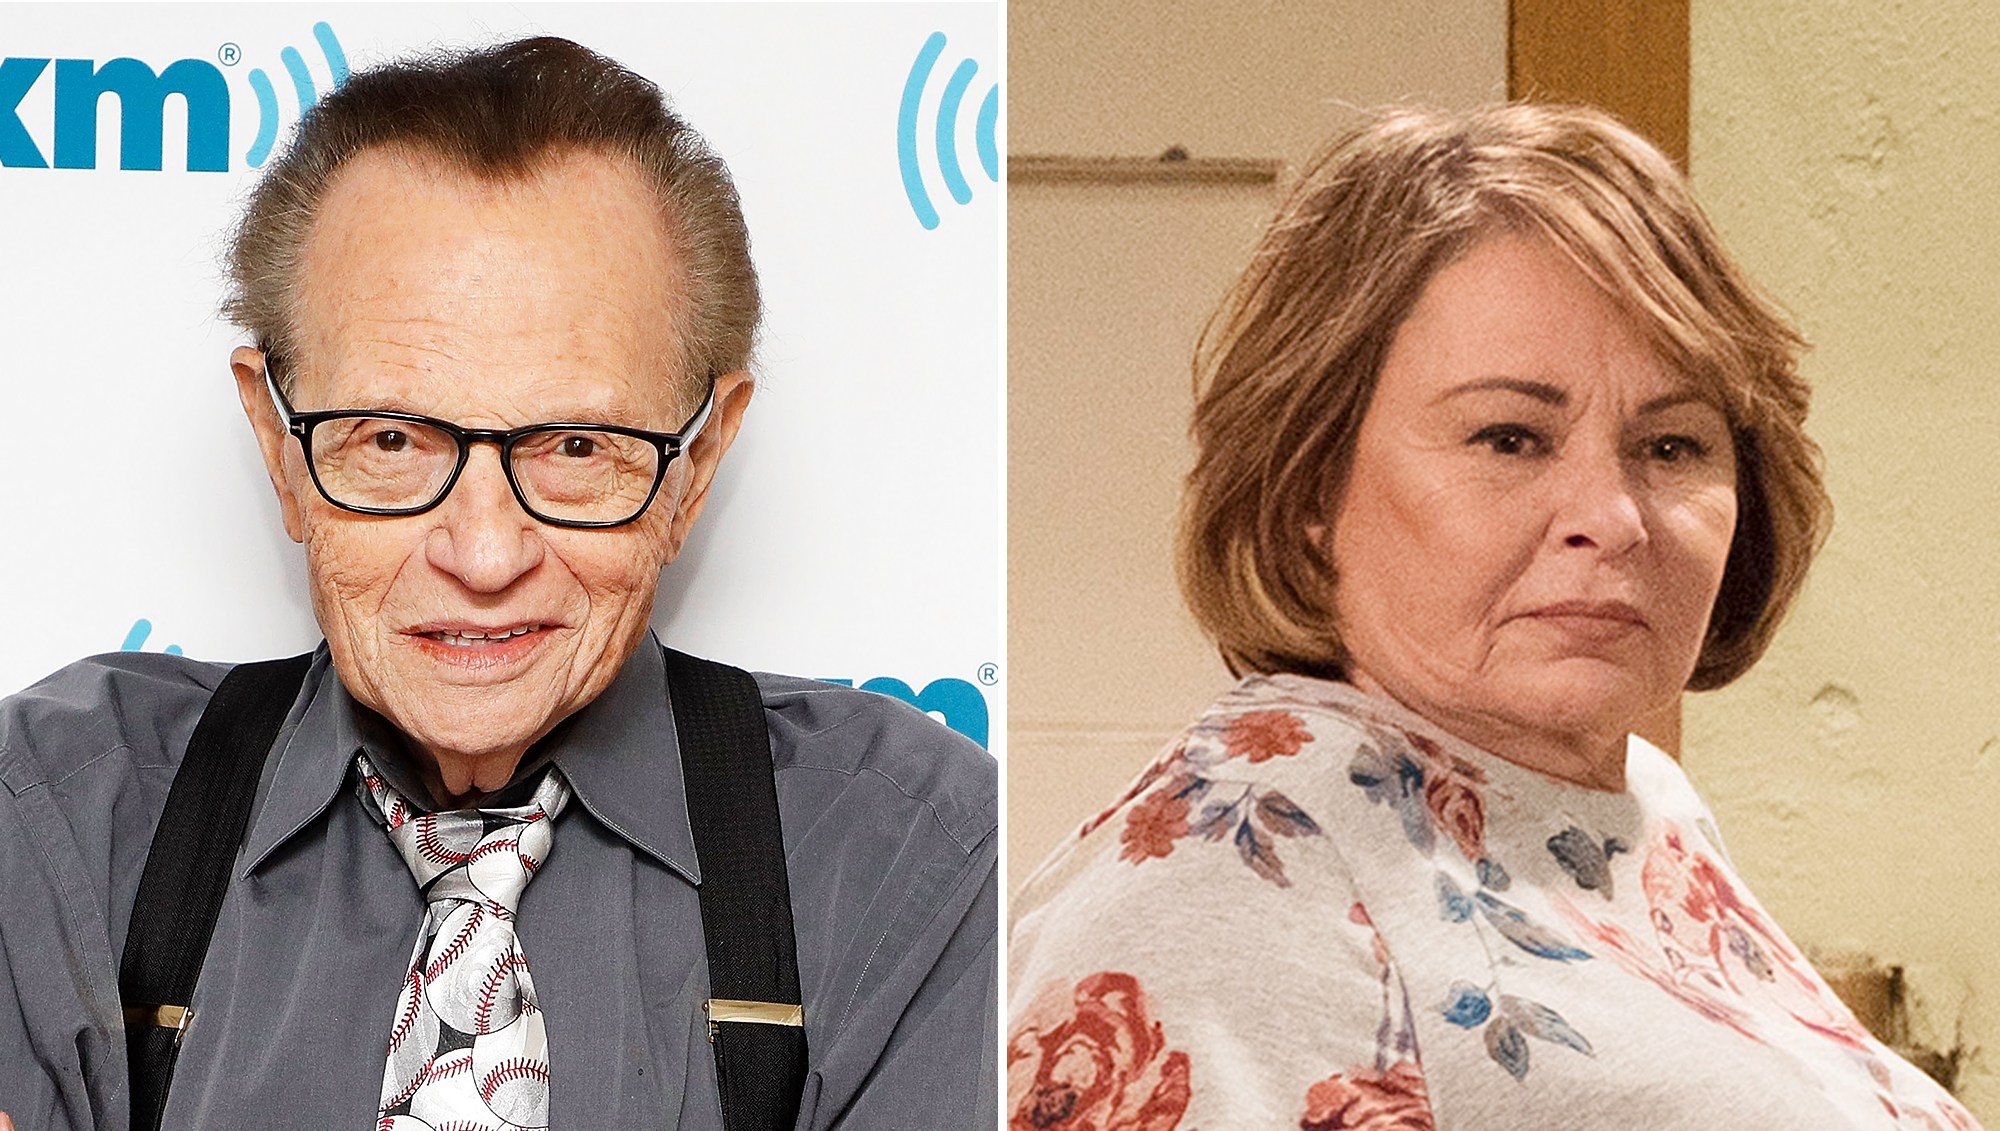 Larry King Thinks Roseanne Has Great Political Balance